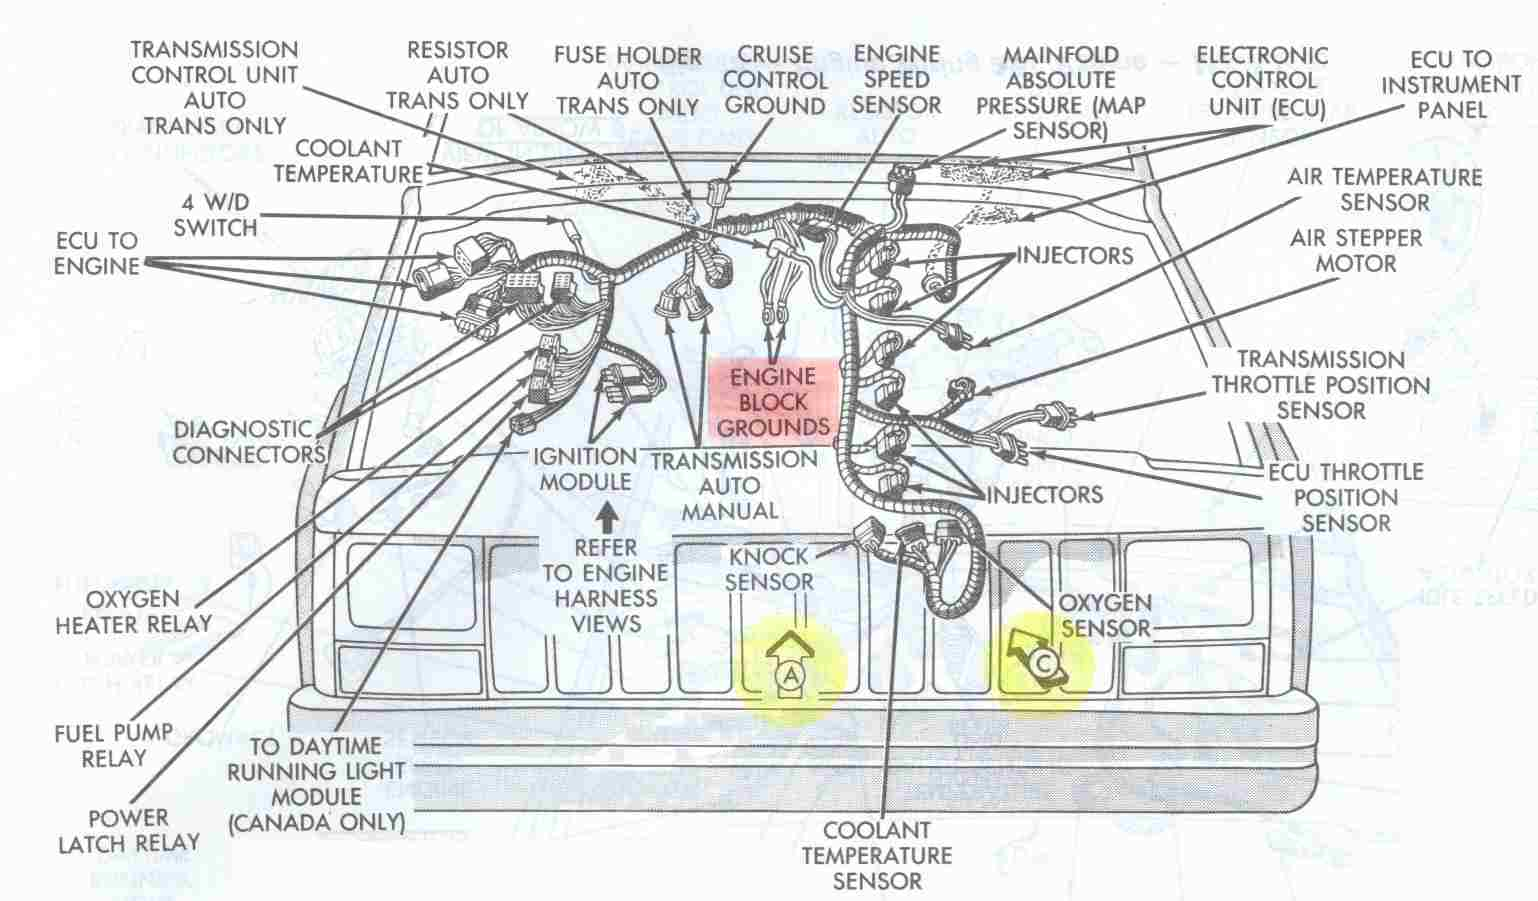 Electrical_Engine_Ground_Points_Overview jeep cherokee electrical diagnosing erratic behavior of engine 2007 Jeep Wrangler Wiring Diagram at honlapkeszites.co